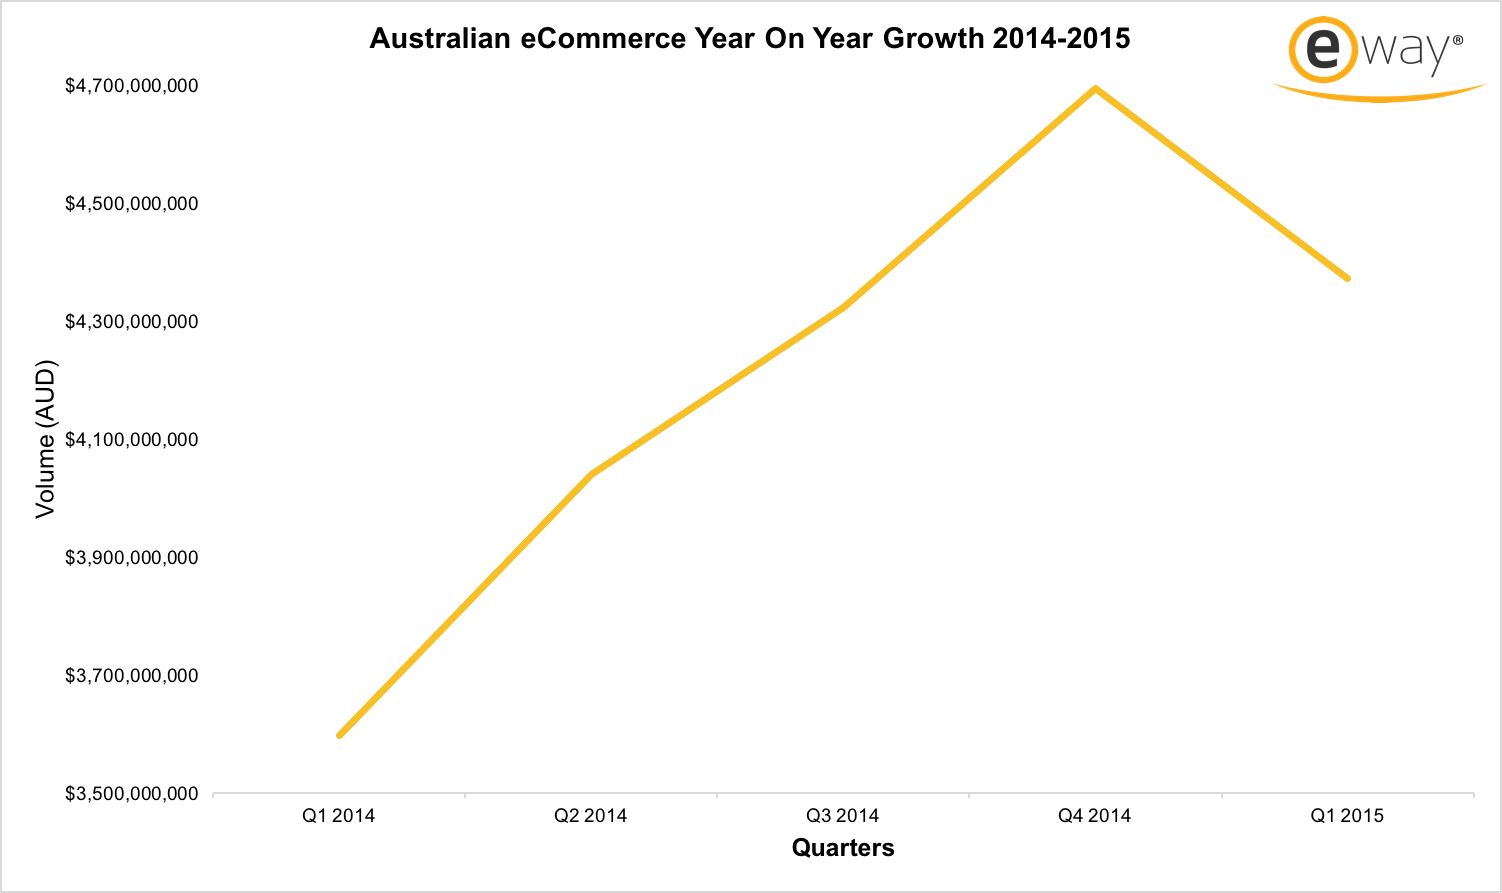 Australian eCommerce Year On Year Growth 2014-2015